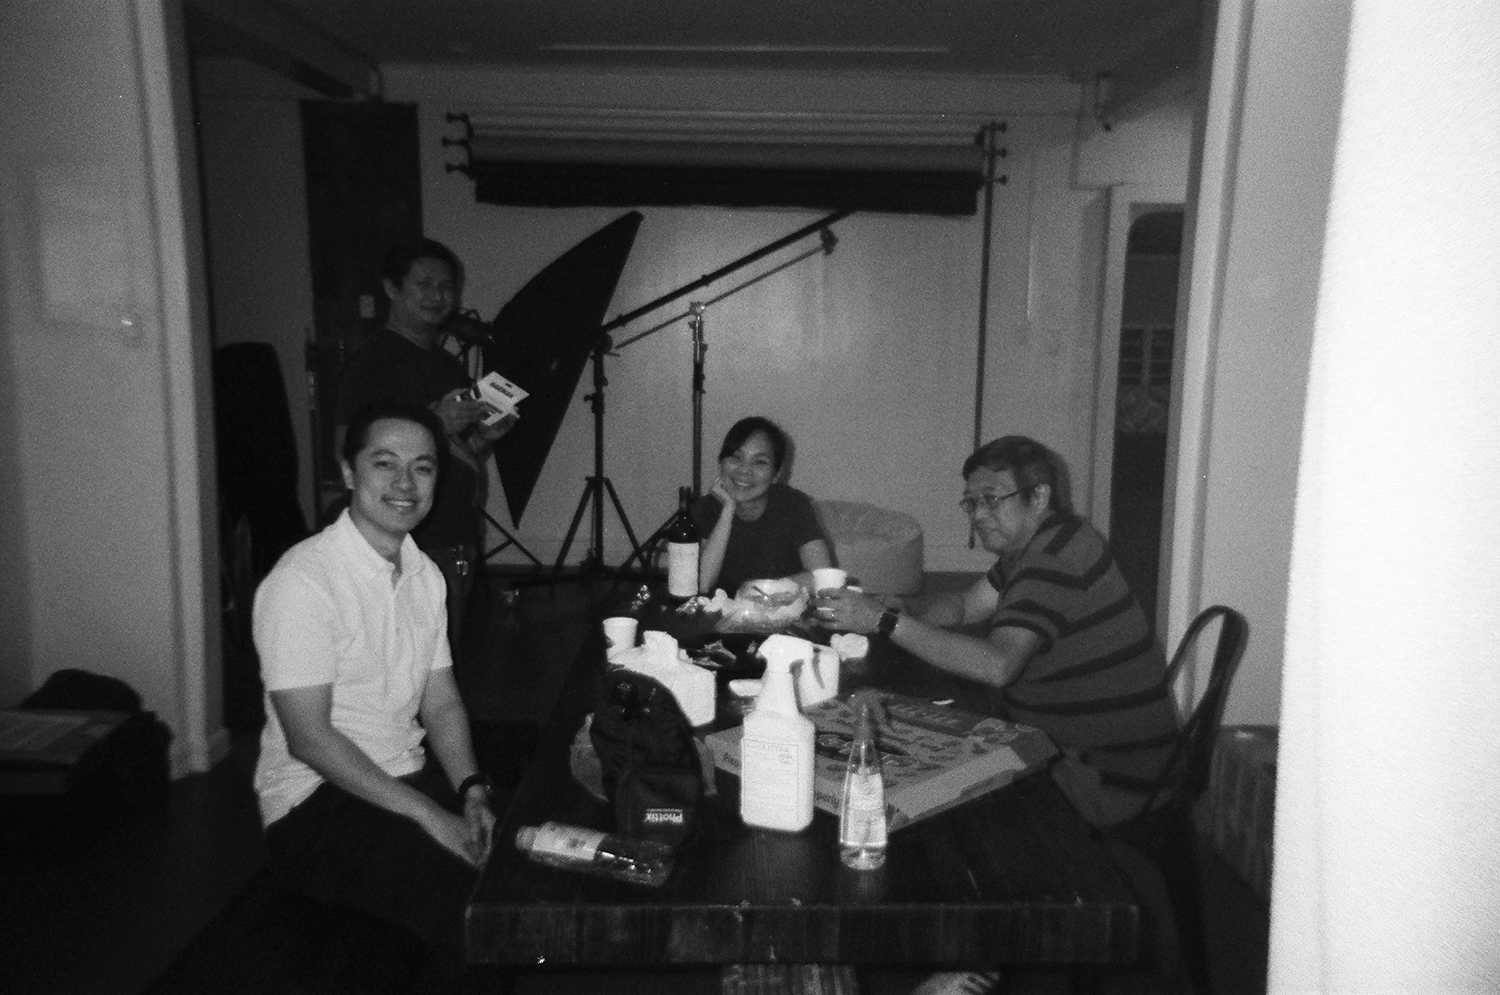 Ronald Sy, Noel Capule, me, and Jojo Colina - Kentmere 400 + HARMAN REUSABLE CAMERA